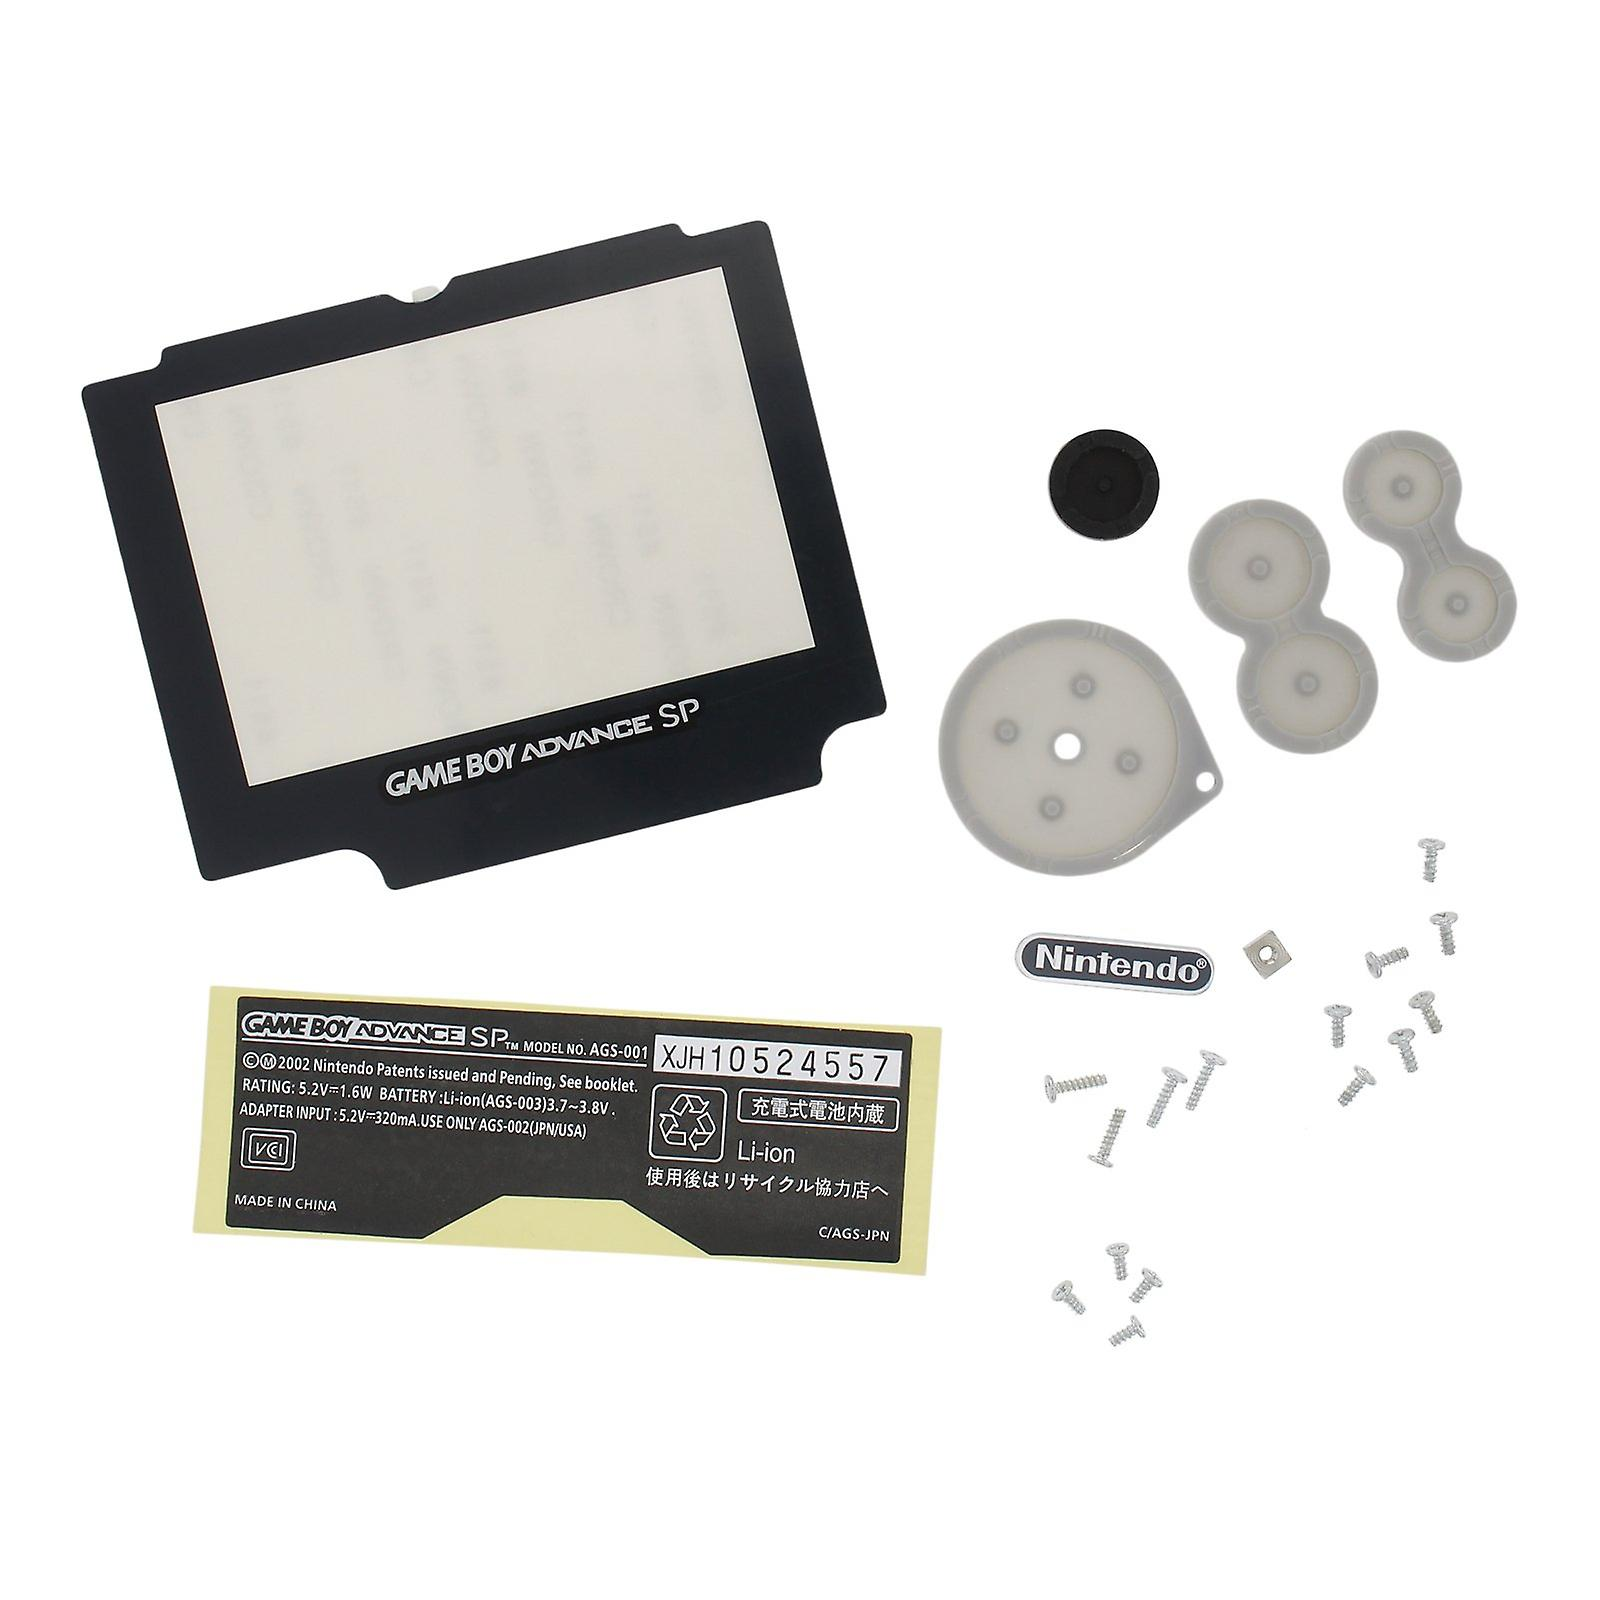 Replacement housing shell kit for nintendo game boy advance sp mario edition - purple